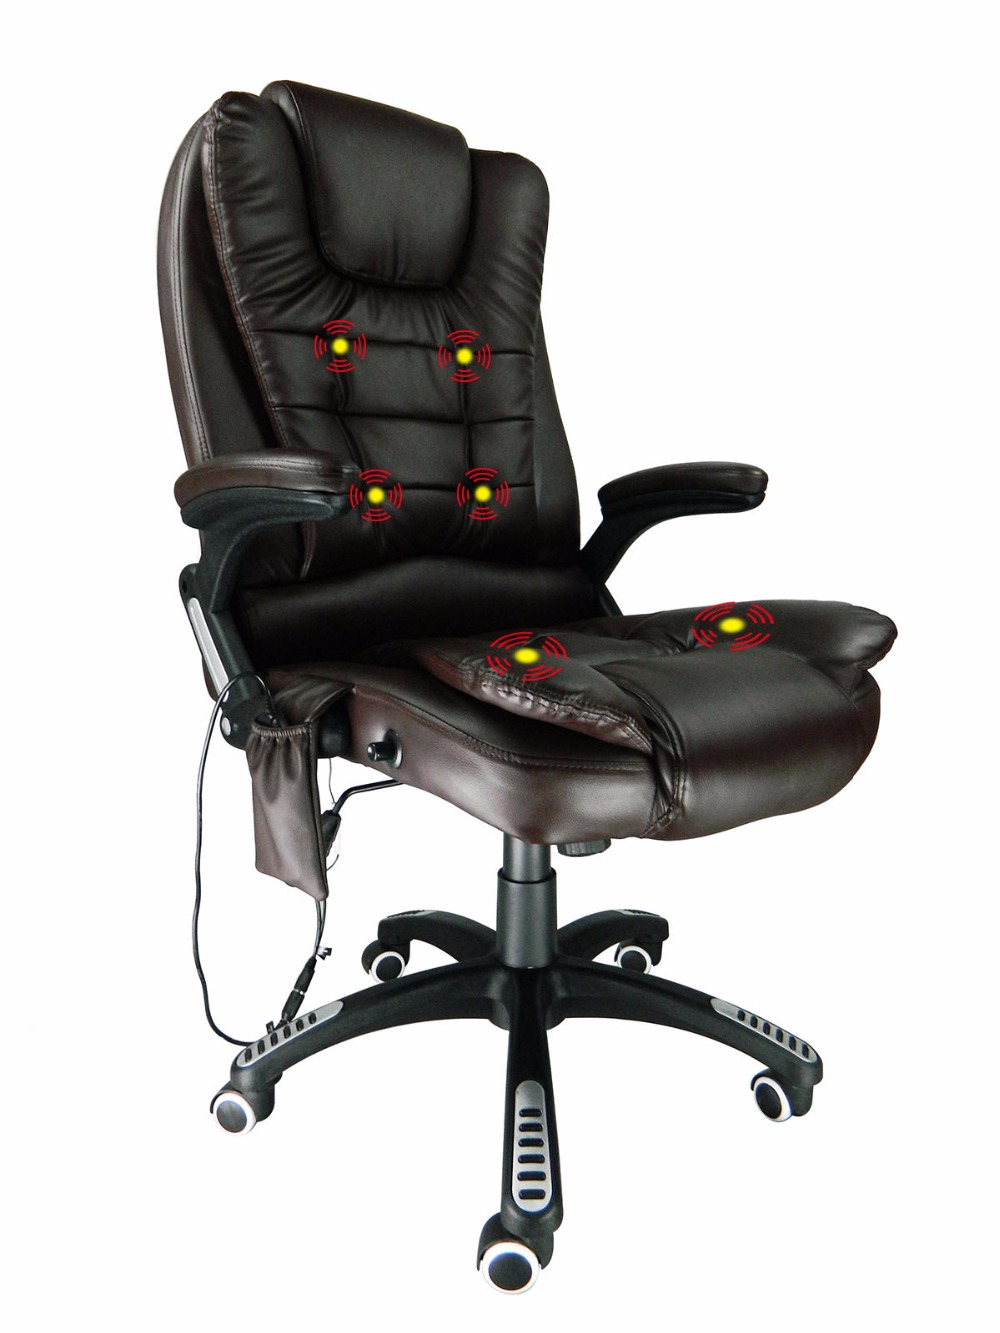 Swivel Office Chair Reclining Leather 6 Point Massage Chair Office Furniture HOT SALE mds808450 reclining wheelchairs